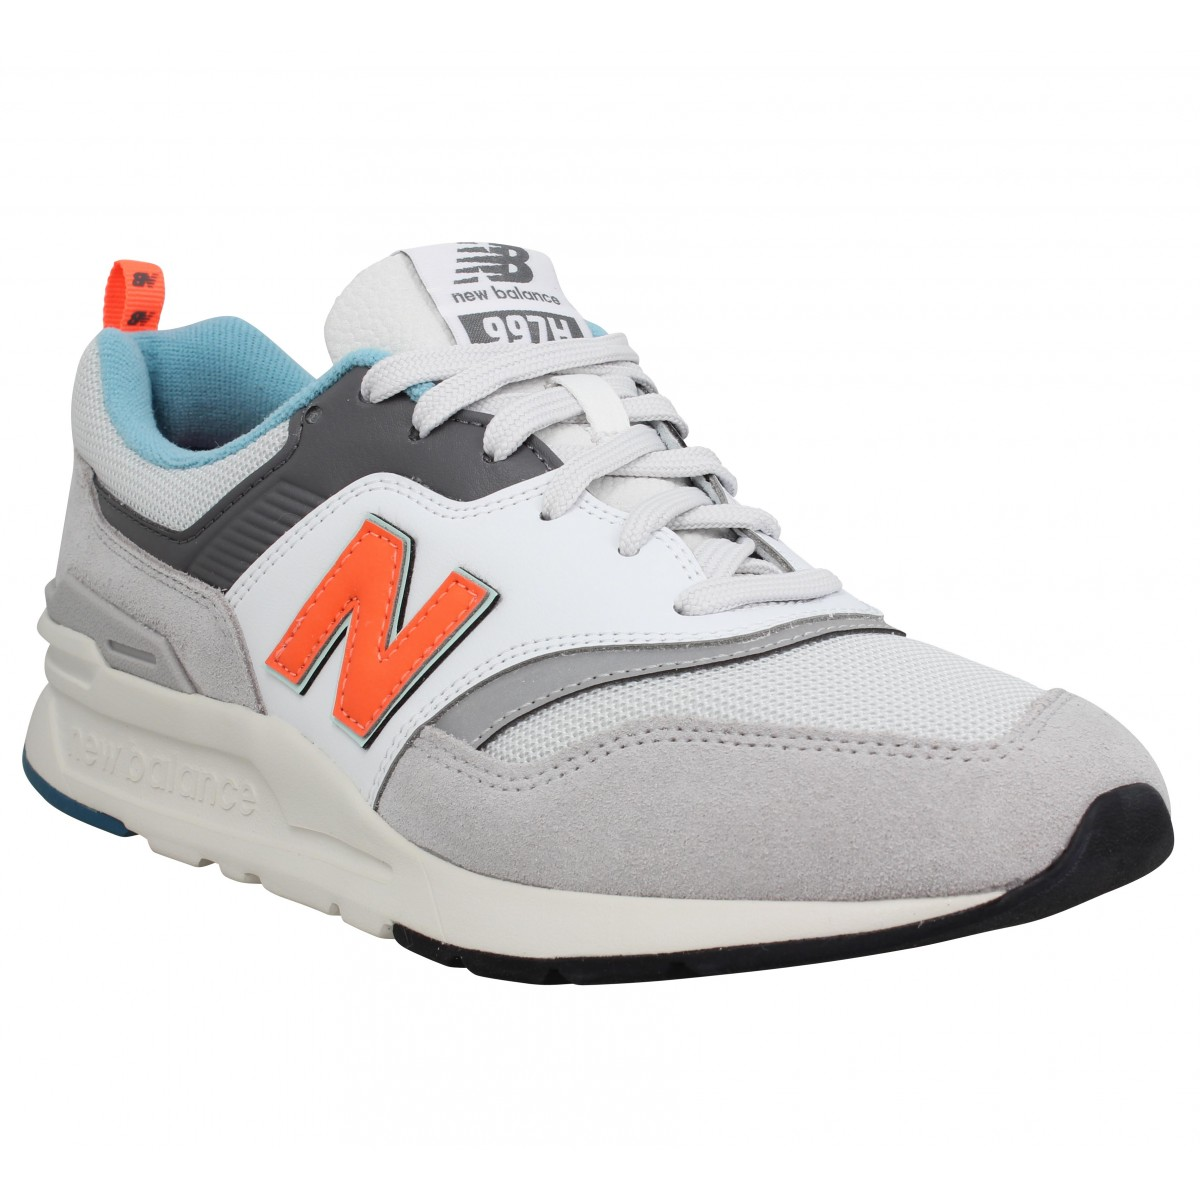 New Balance Homme 997 Toile -41,5-blanc...